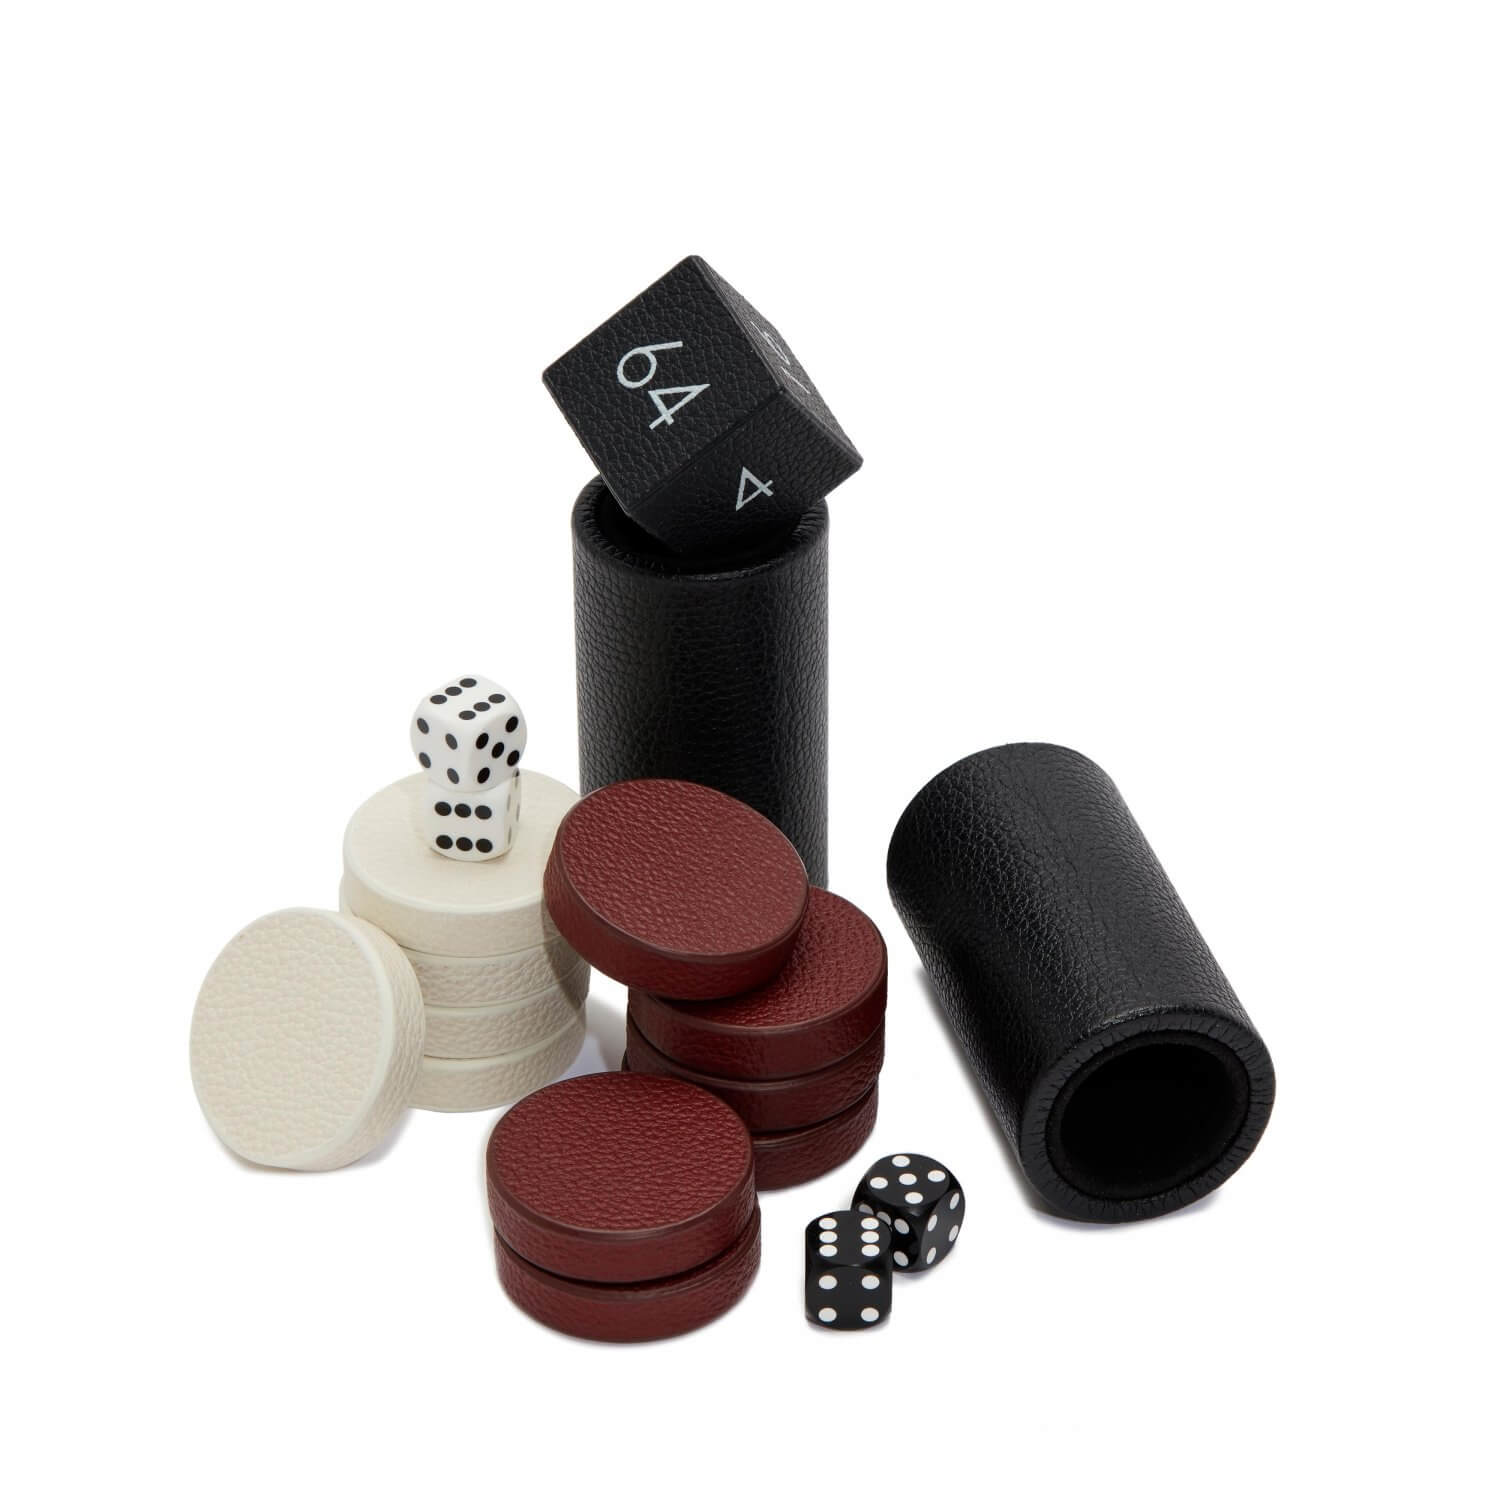 Alexandra Llewelyn Leather Playing Pieces